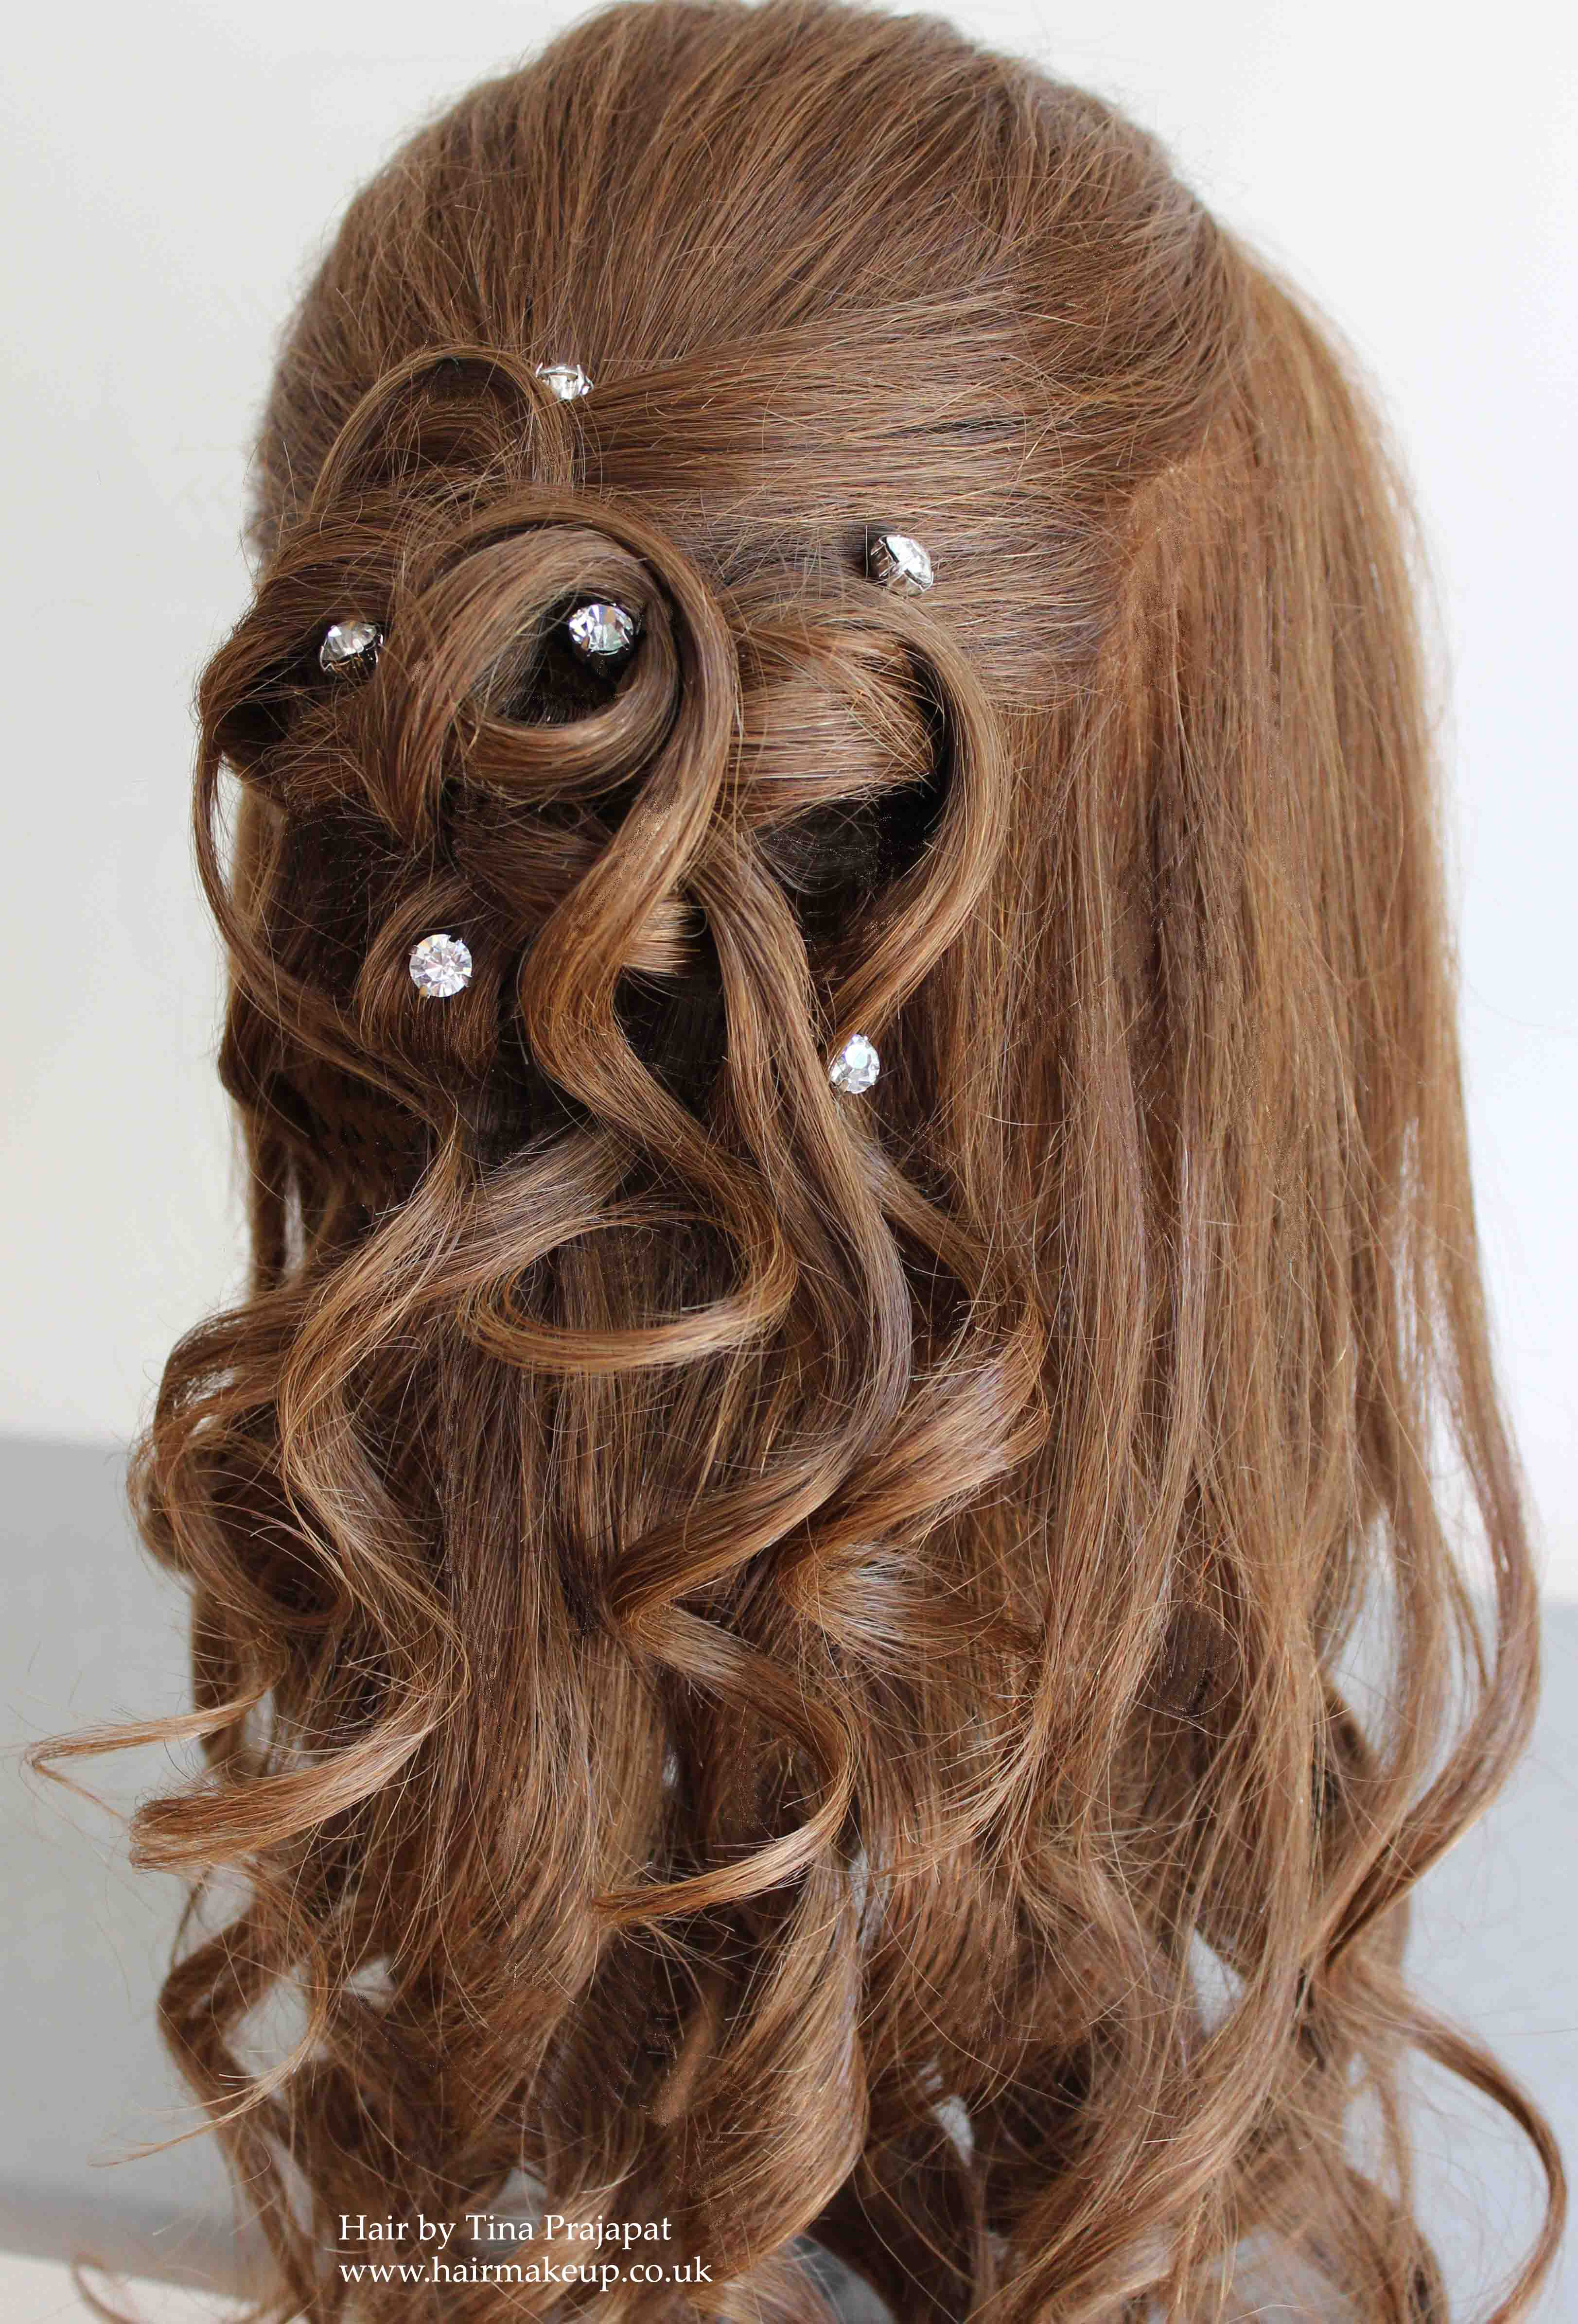 half up half down hair ideas for brides and special occasions |